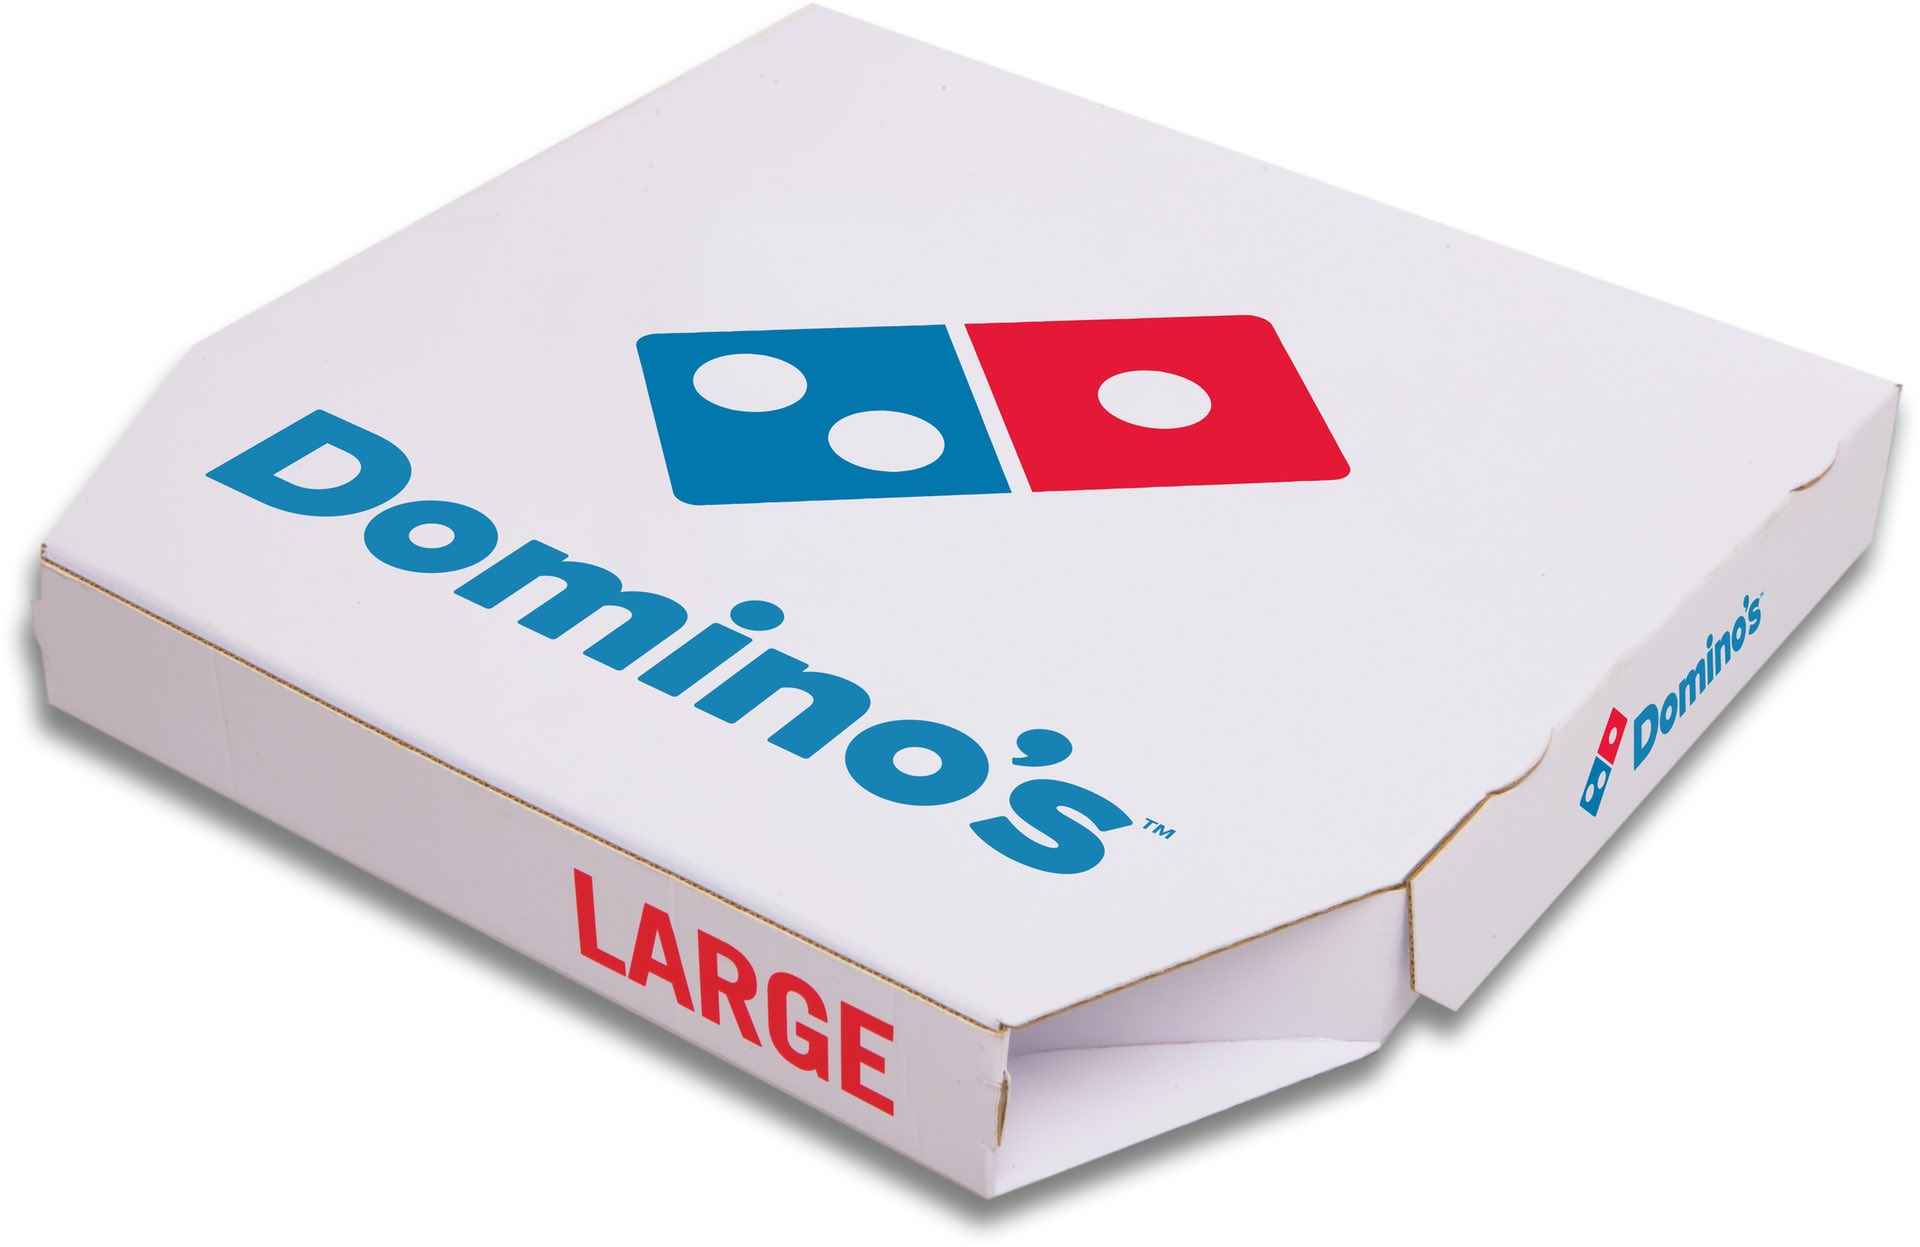 Domino 39 s shuts down few stores as profit tumbles indian ceo - Dominos pizza paterna ...